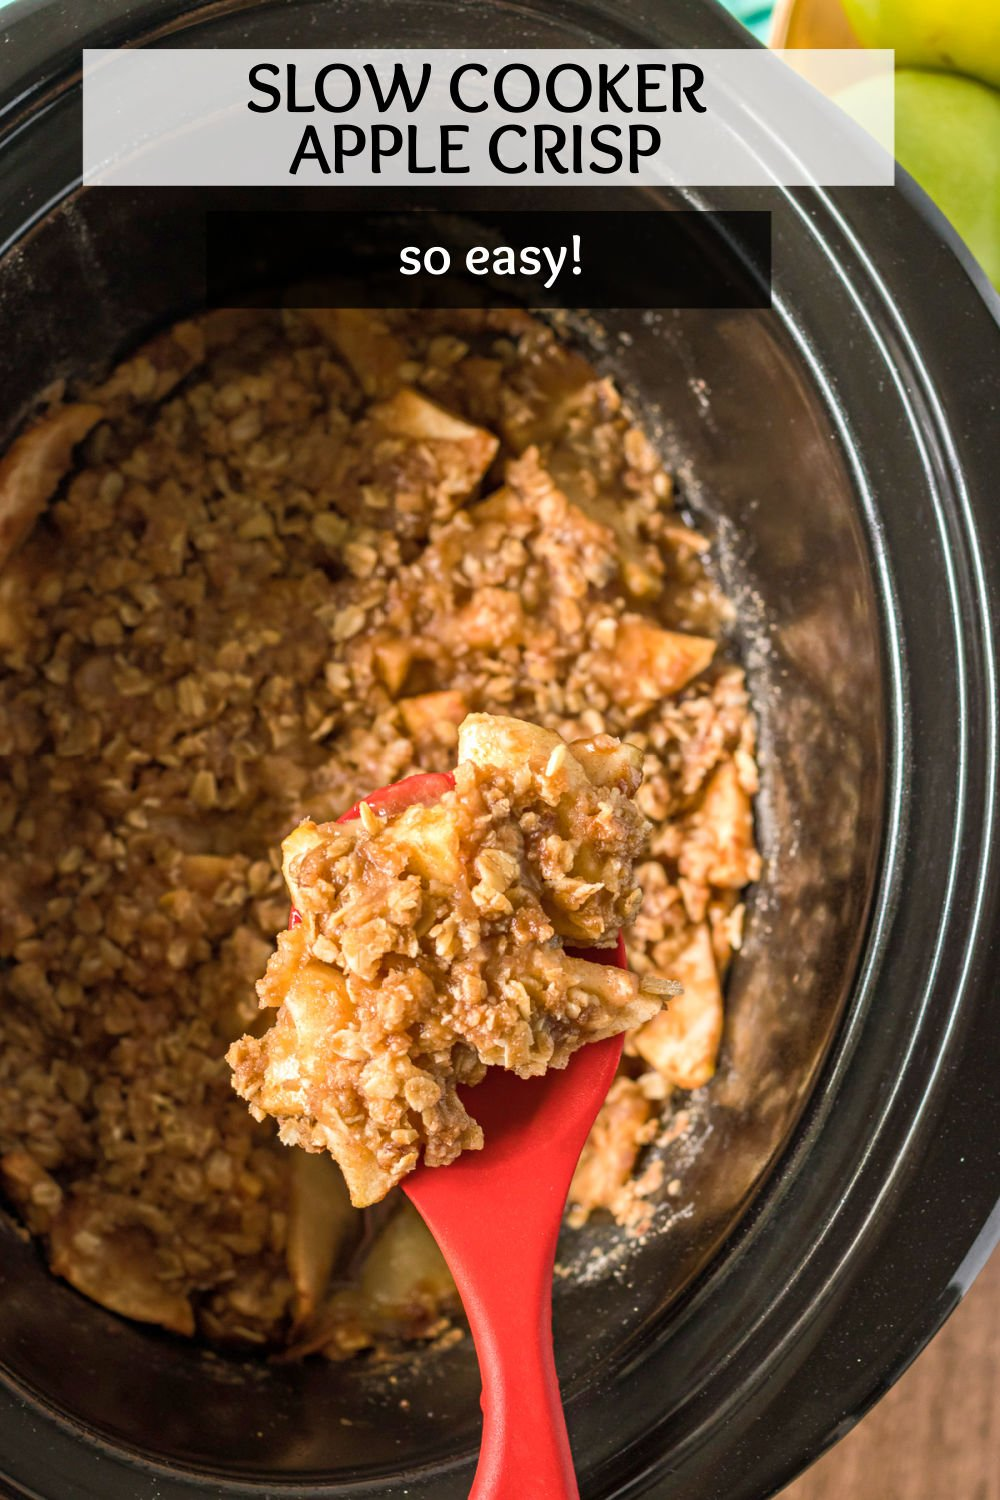 Easy Slow Cooker Apple Crisp with brown sugar cinnamon oat topping is the perfect way to use some of your favorite apples. Served warm or cold, this dessert is a favorite! | www.persnicketyplates.com